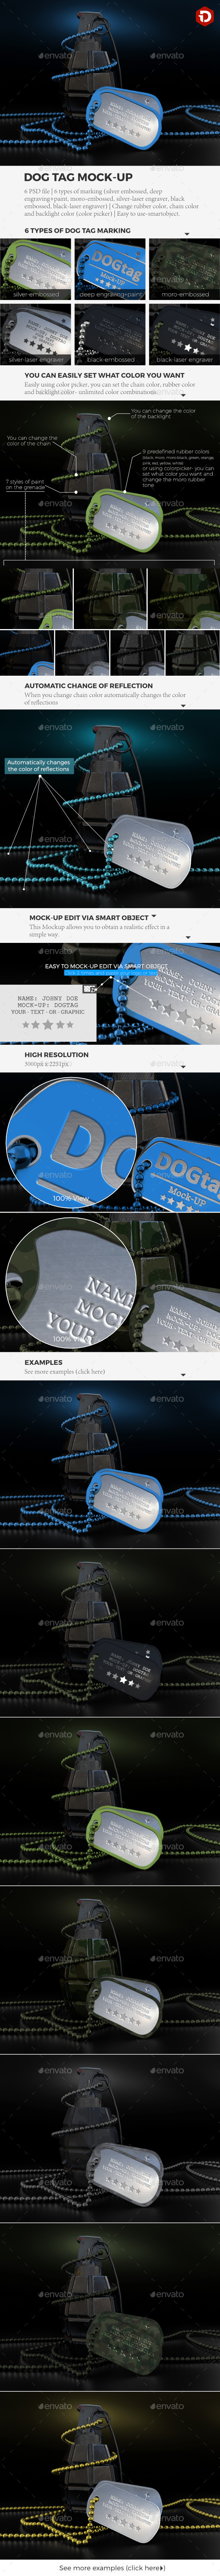 GraphicRiver Dog Tag Mock-up 20837426